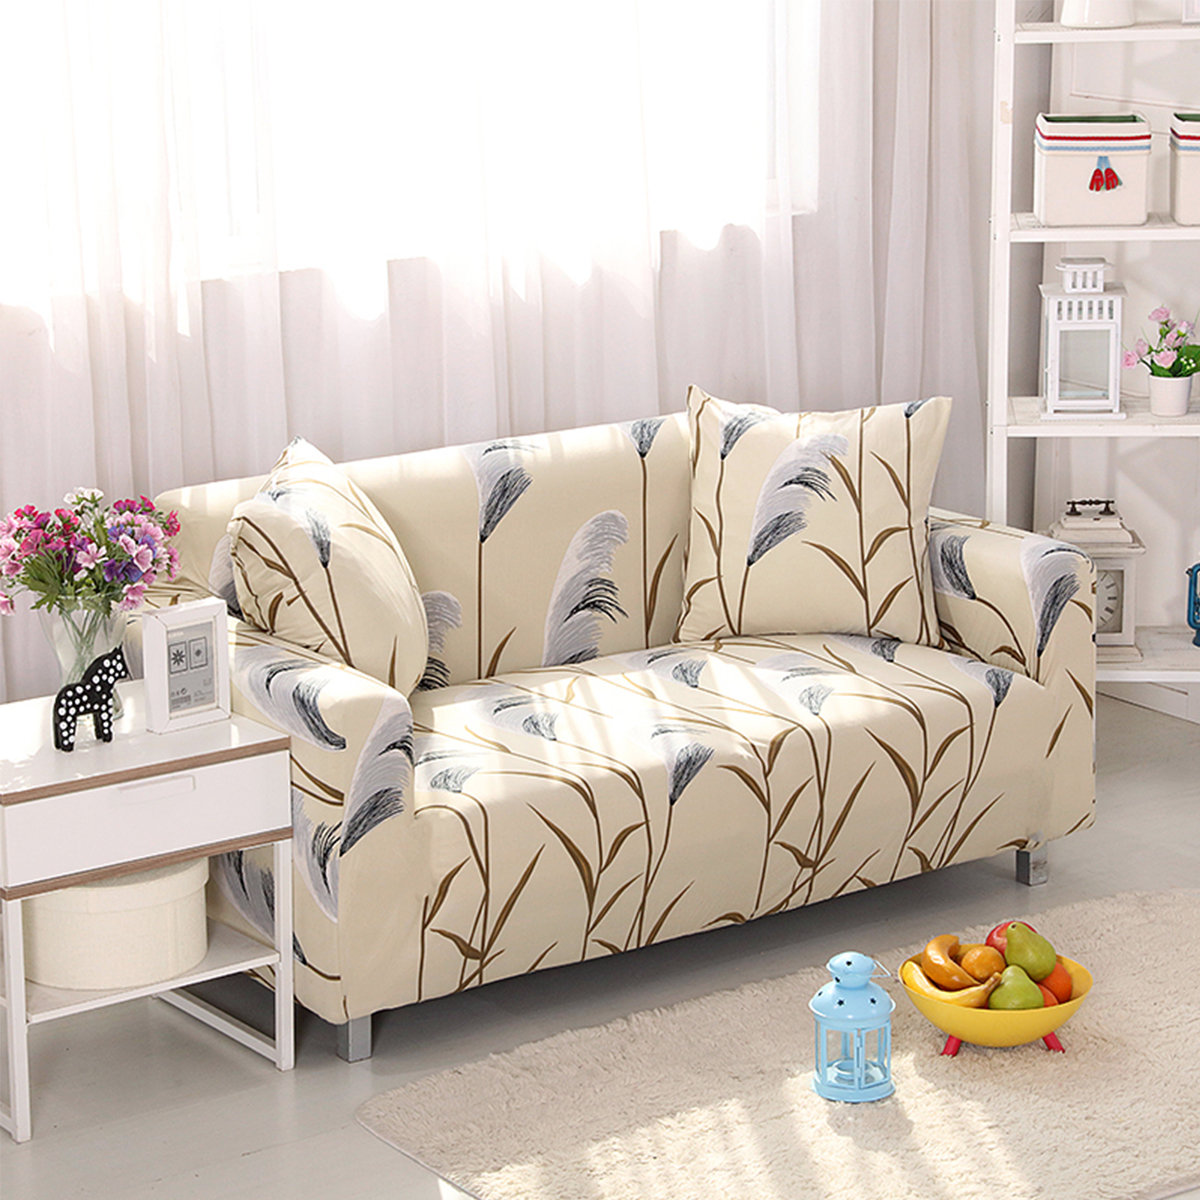 Couch Covers Au Ship Stretch Sofa Seater Protector Washable Couch Cover Slipcover Decor Chair Covers